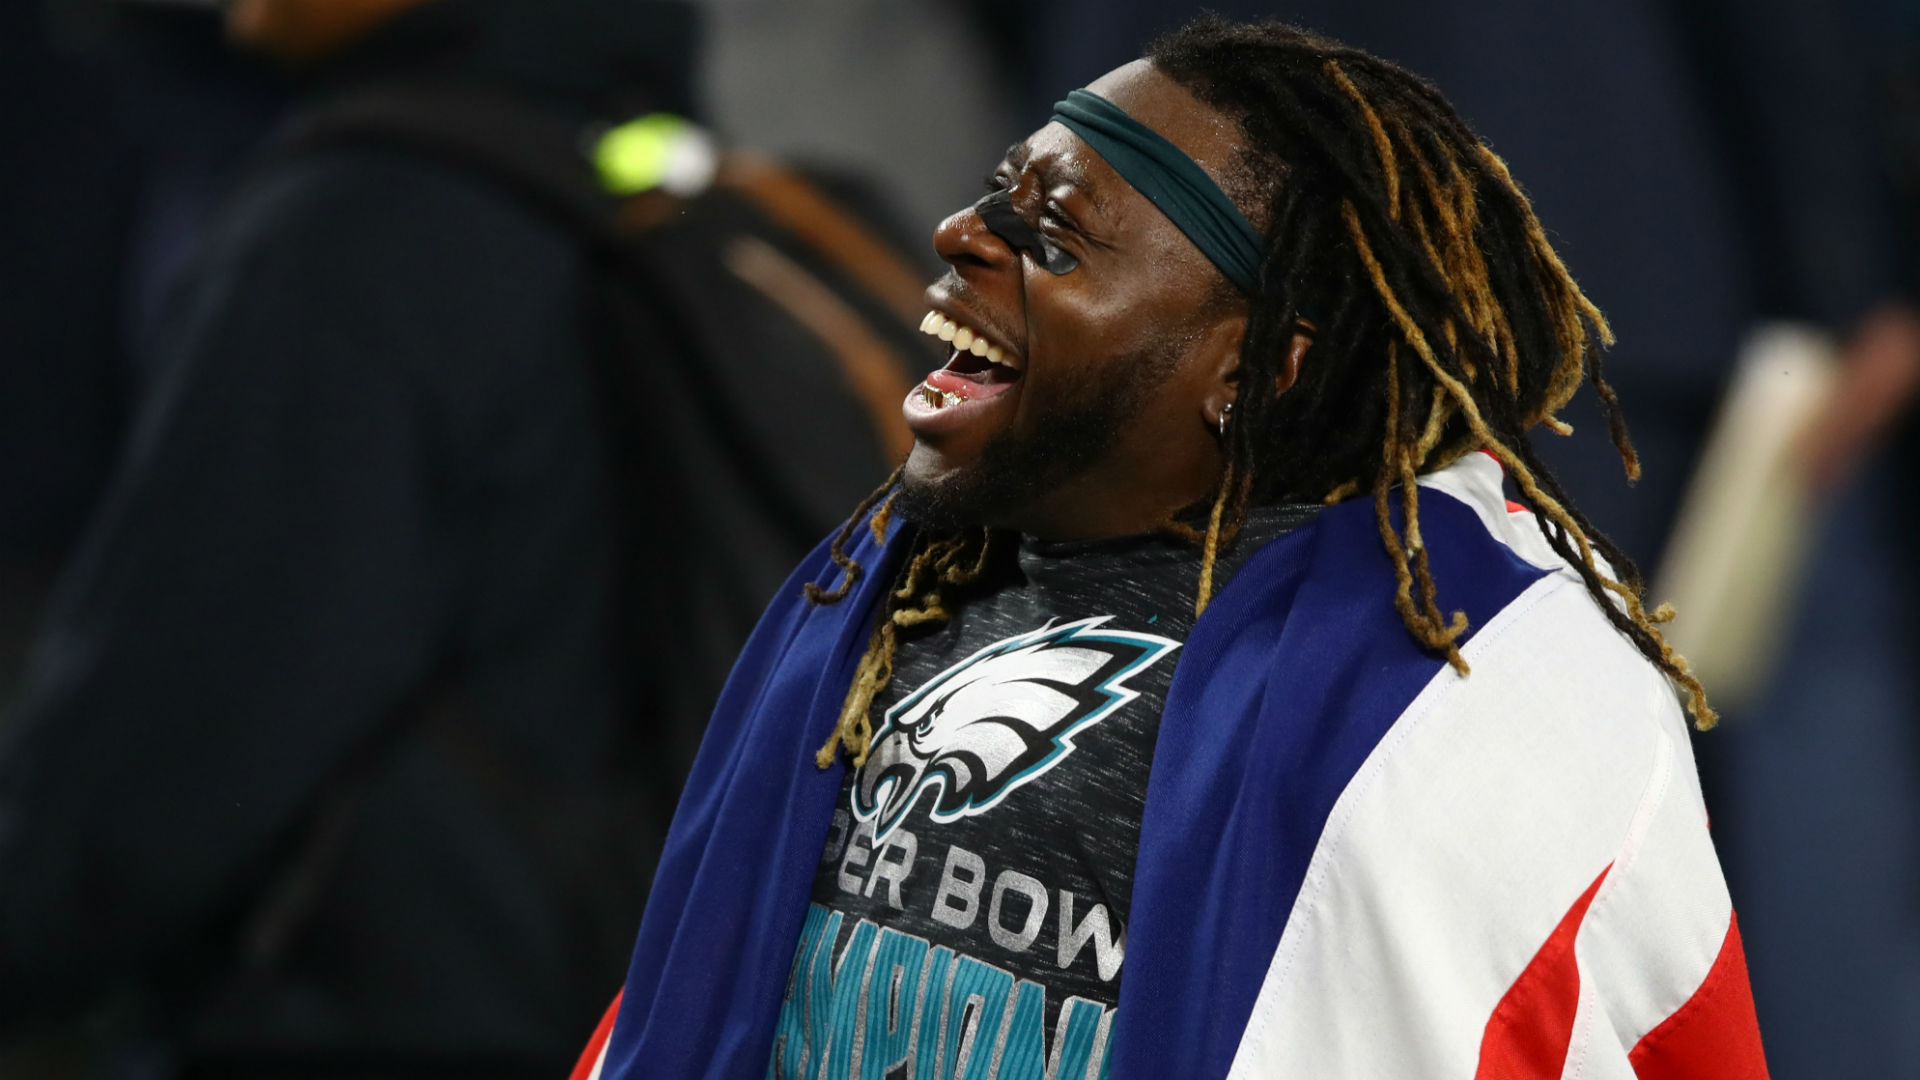 Eagles' Jay Ajayi reportedly sued for trashing mansion, shoving owner